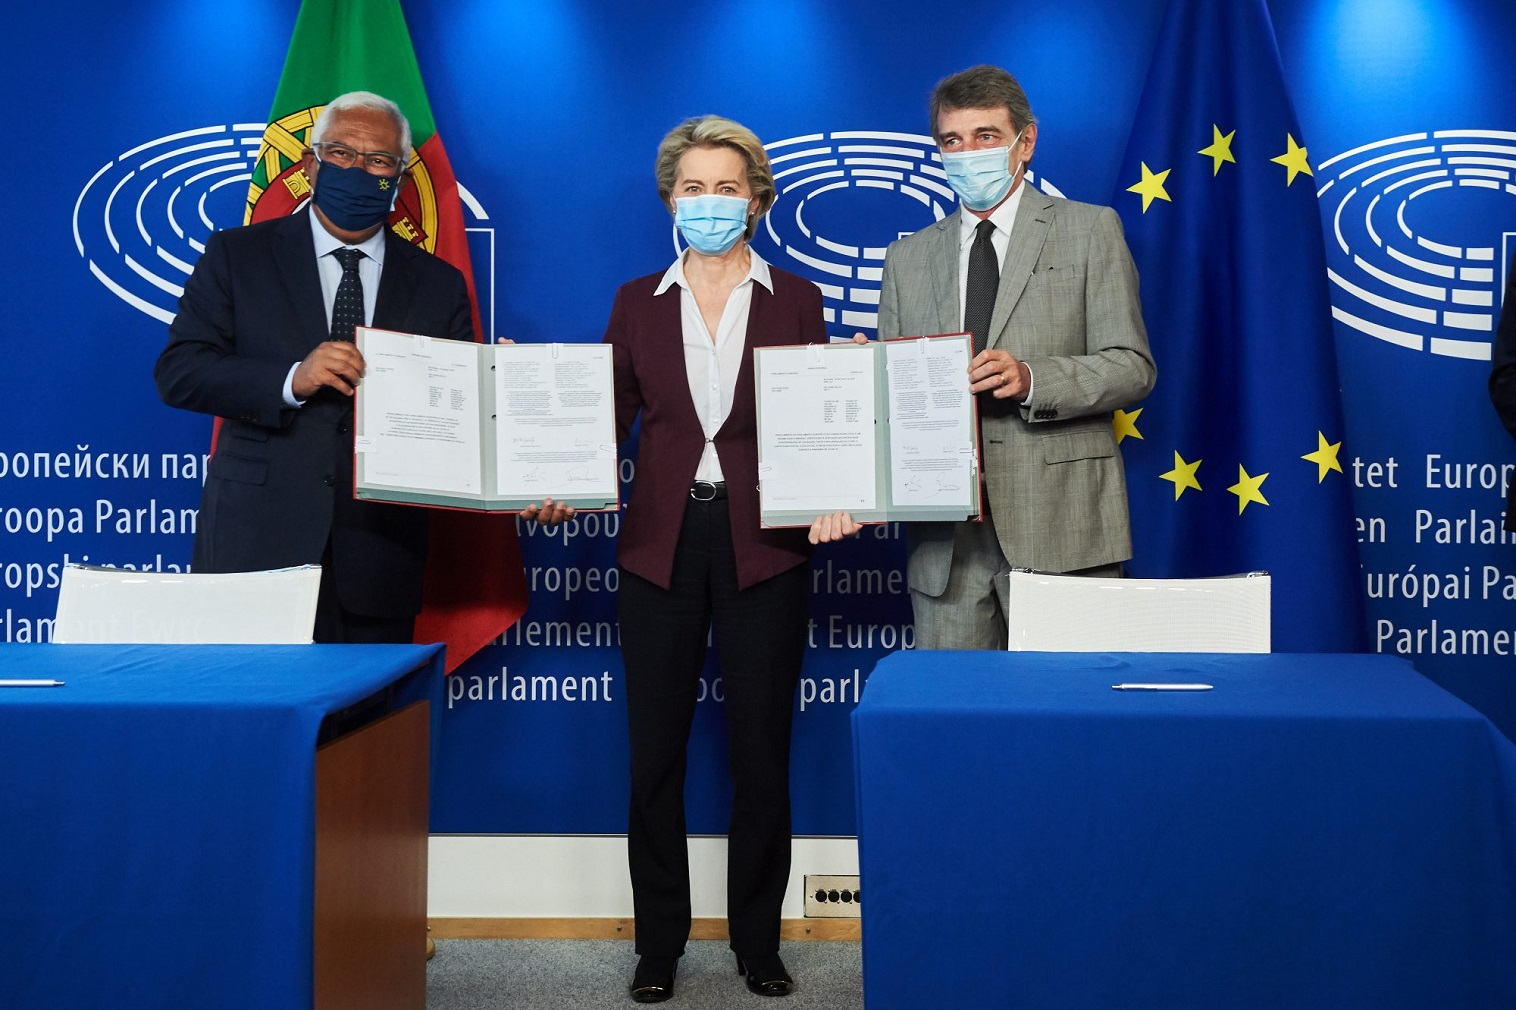 The aim of the EU Digital COVID Certificate is to facilitate safe and free movement in the EU during the COVID-19 pandemic.